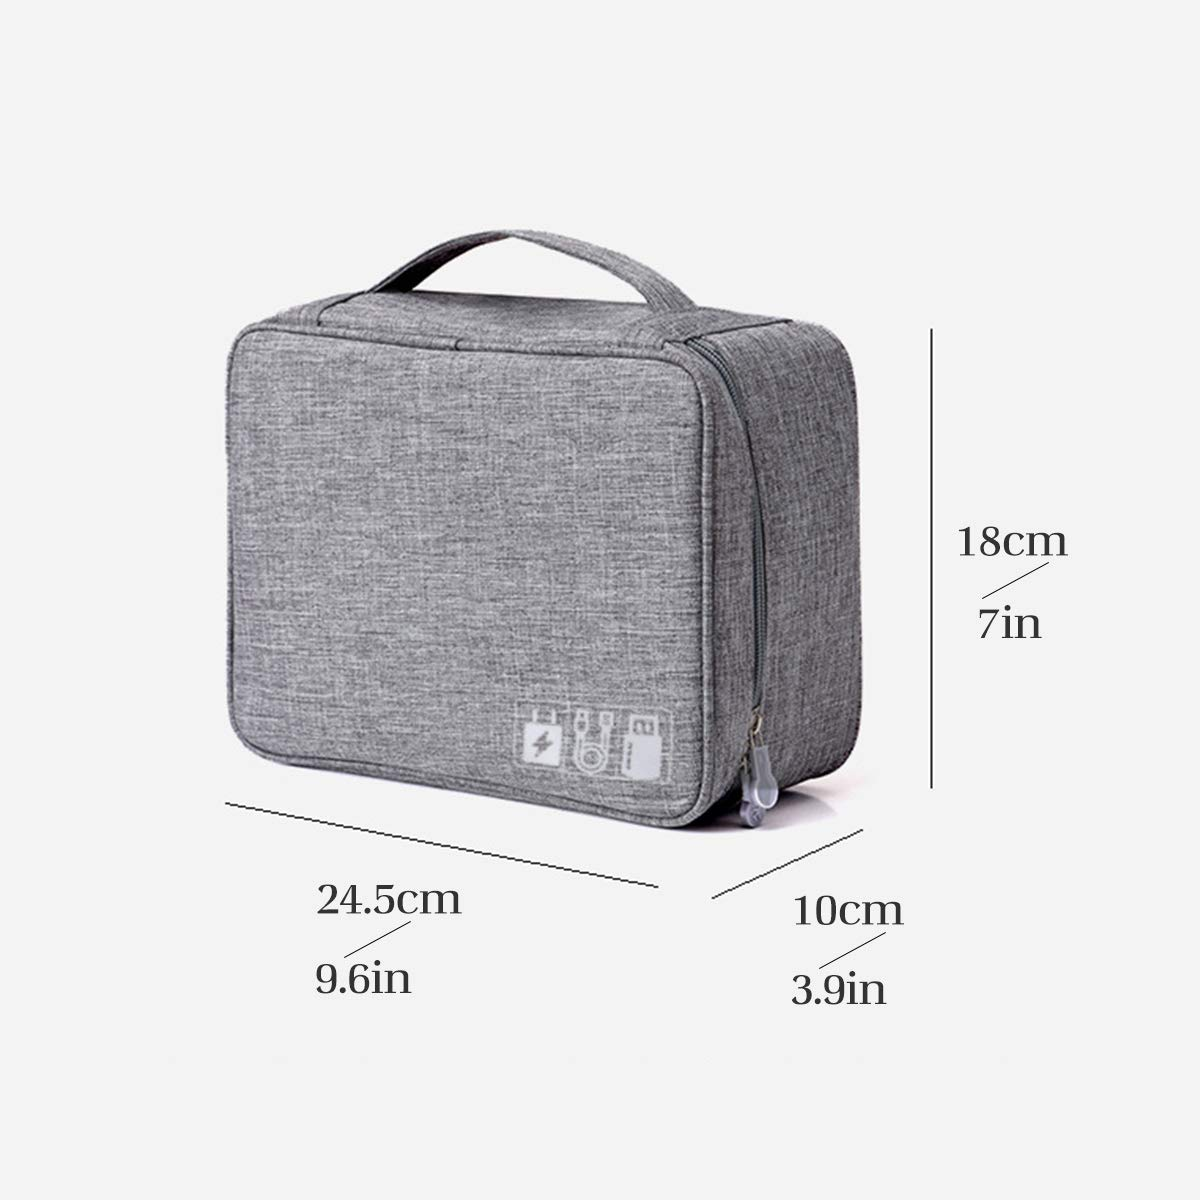 OrgaWise Accessories Bag Cable Case Electronics Organiser and Memory Card Extra Send 2 pcs Data protect sets Travel Cable Organisers for Carry Power Bank Camera